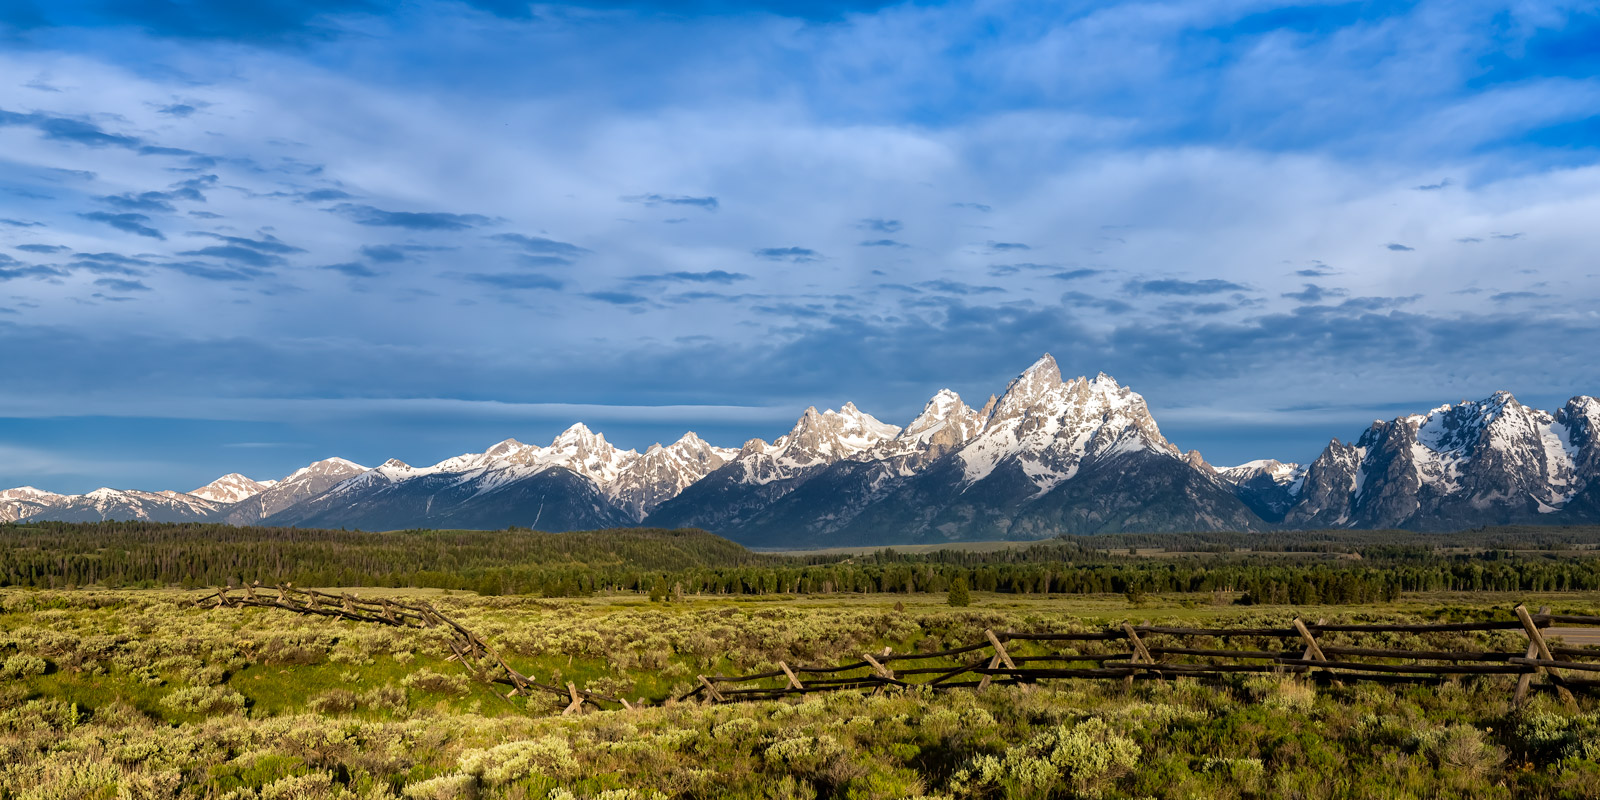 A Limited Edition, Fine Art photograph of the mountains outside an old western style fence at Grand Teton National Park in Wyoming...